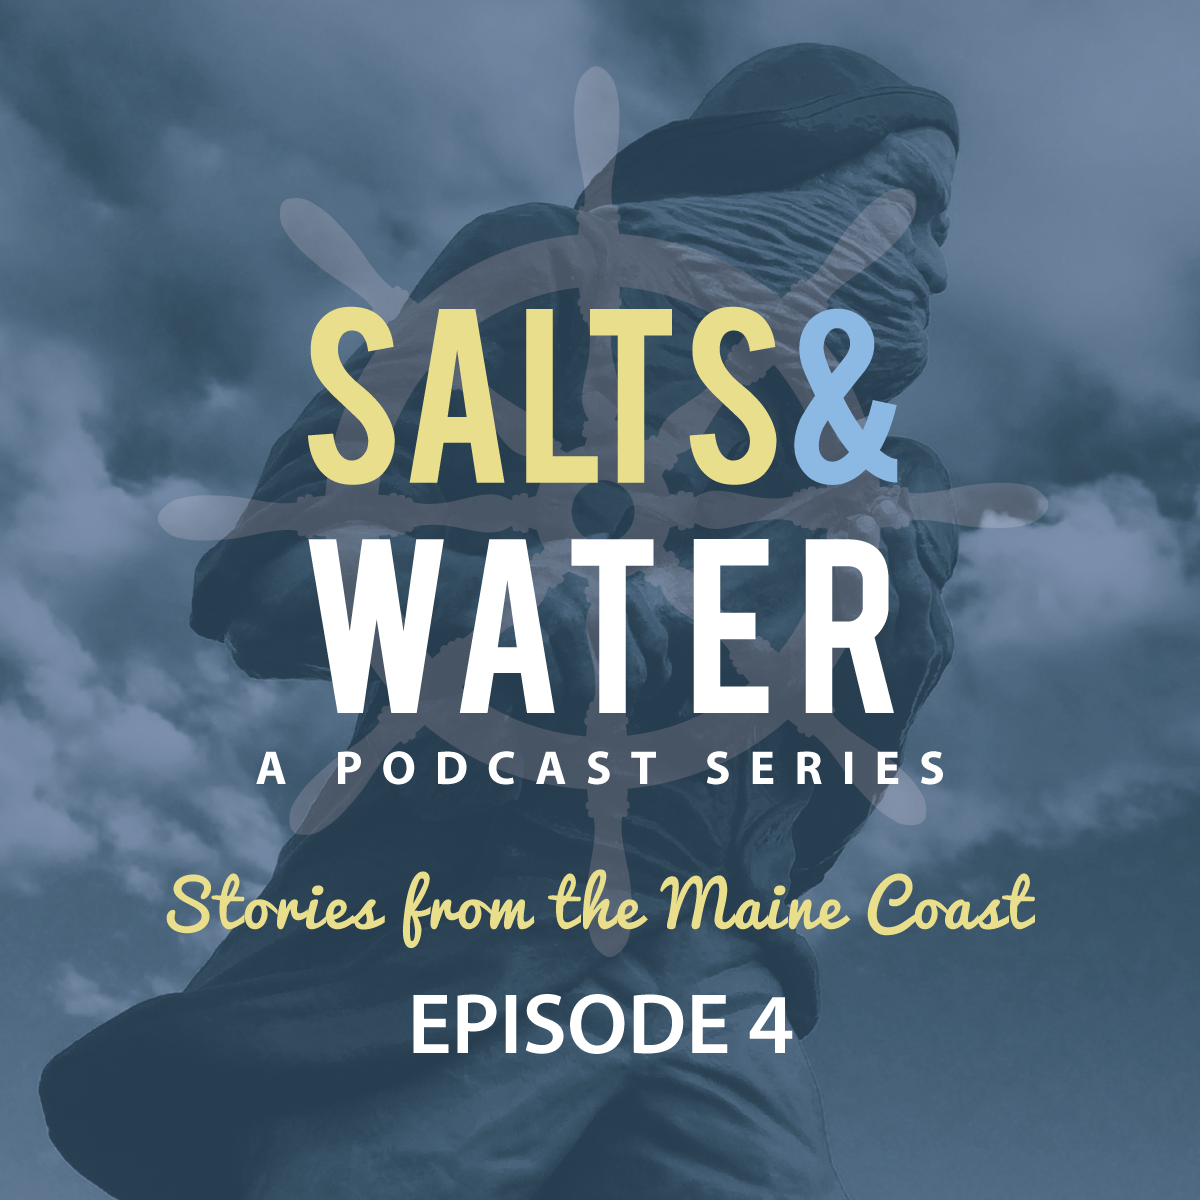 SALTS-AND-WATER-EPISODE-4-v2